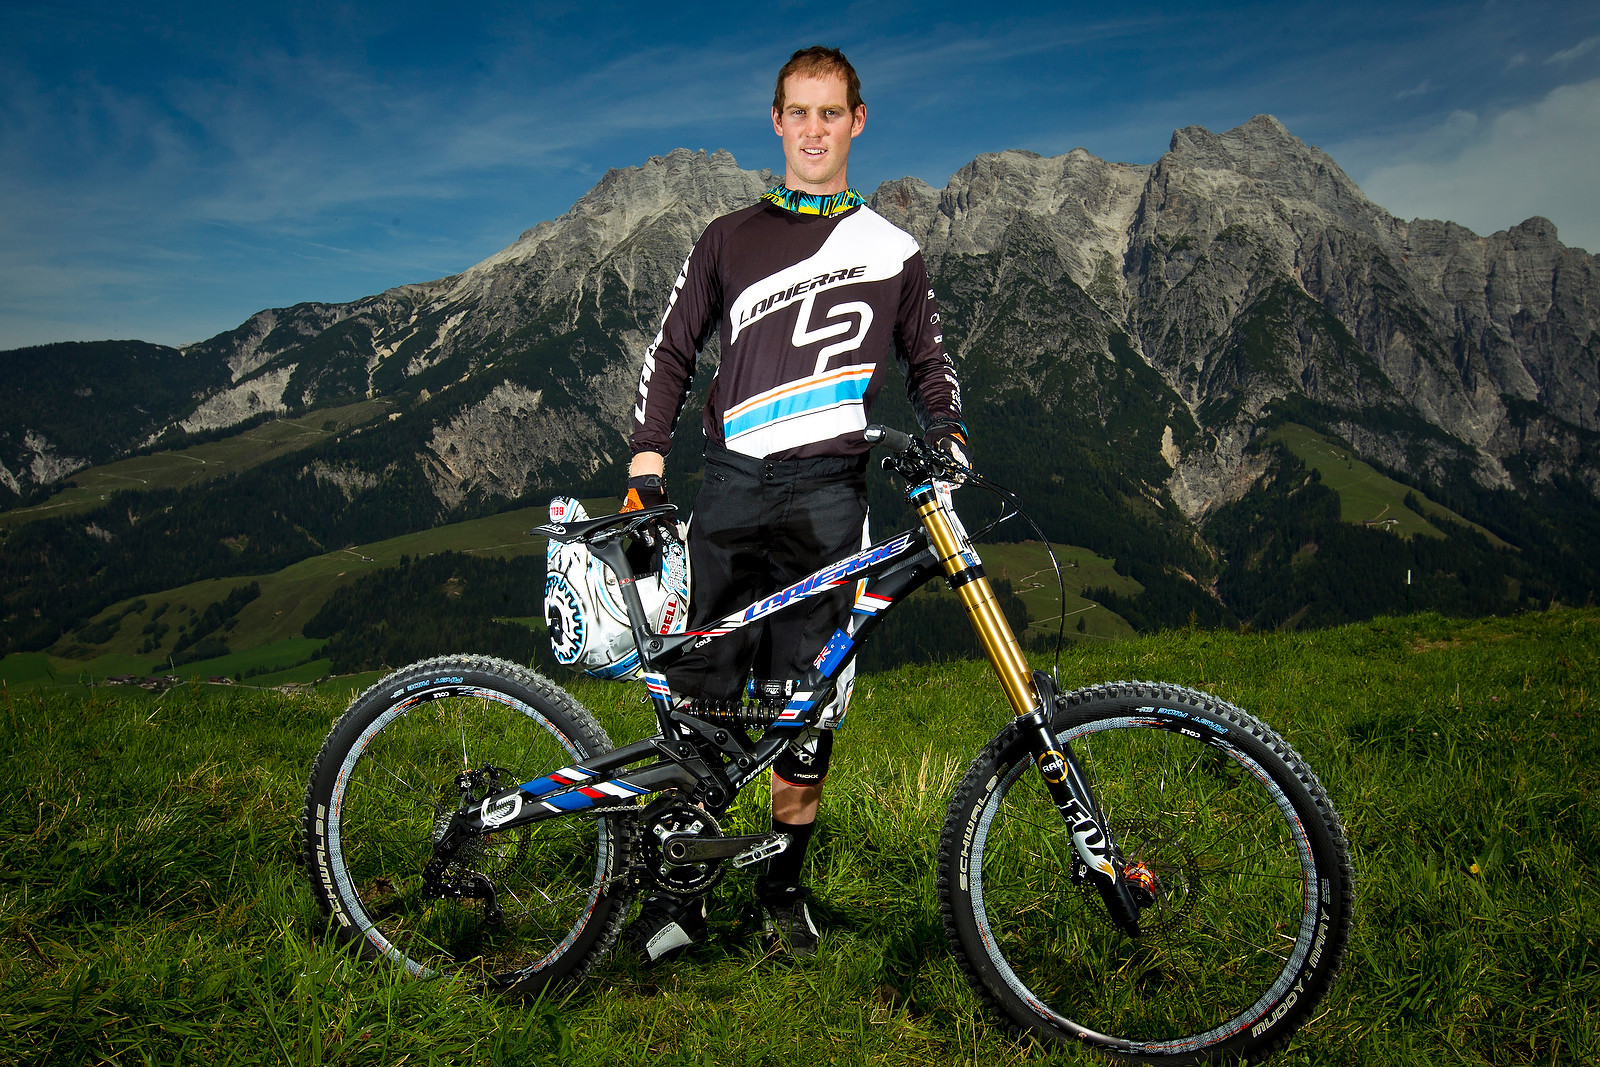 Cam Cole and his Lapierre at World Champs - World Championships Riders and Bikes - Mountain Biking Pictures - Vital MTB